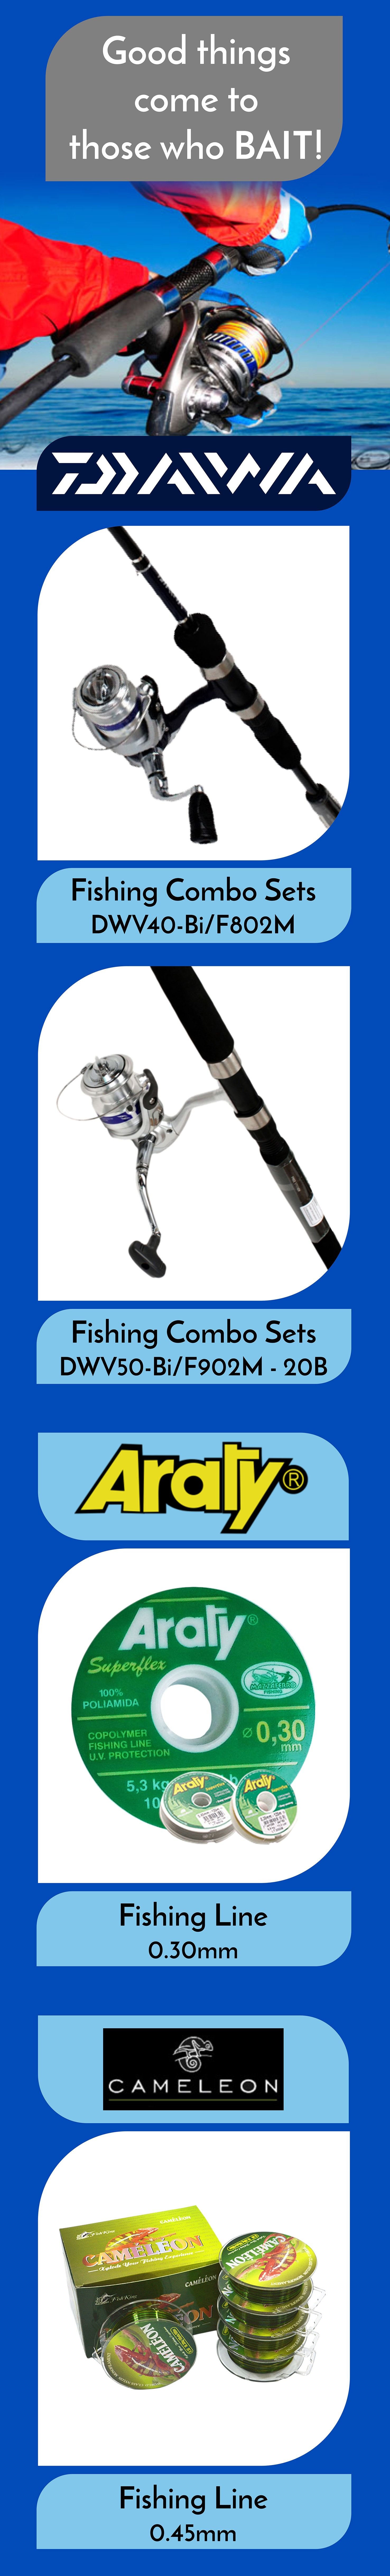 Range of fishing gear form Daiwa, Araty and Cameleon:  The Daiwa D-Wave combo fishing sets pair high quality spinning reel with rod designed for salt water use.   The Araty Superflex Fishing Line is well suited to the conditions of transparent water or turbid, fresh or salt water for use in spinning reels and reels.  The Cameleon Mono Fishing Line is abrasion resistant and is a low visibility fishing line having outstanding sinking capacity.